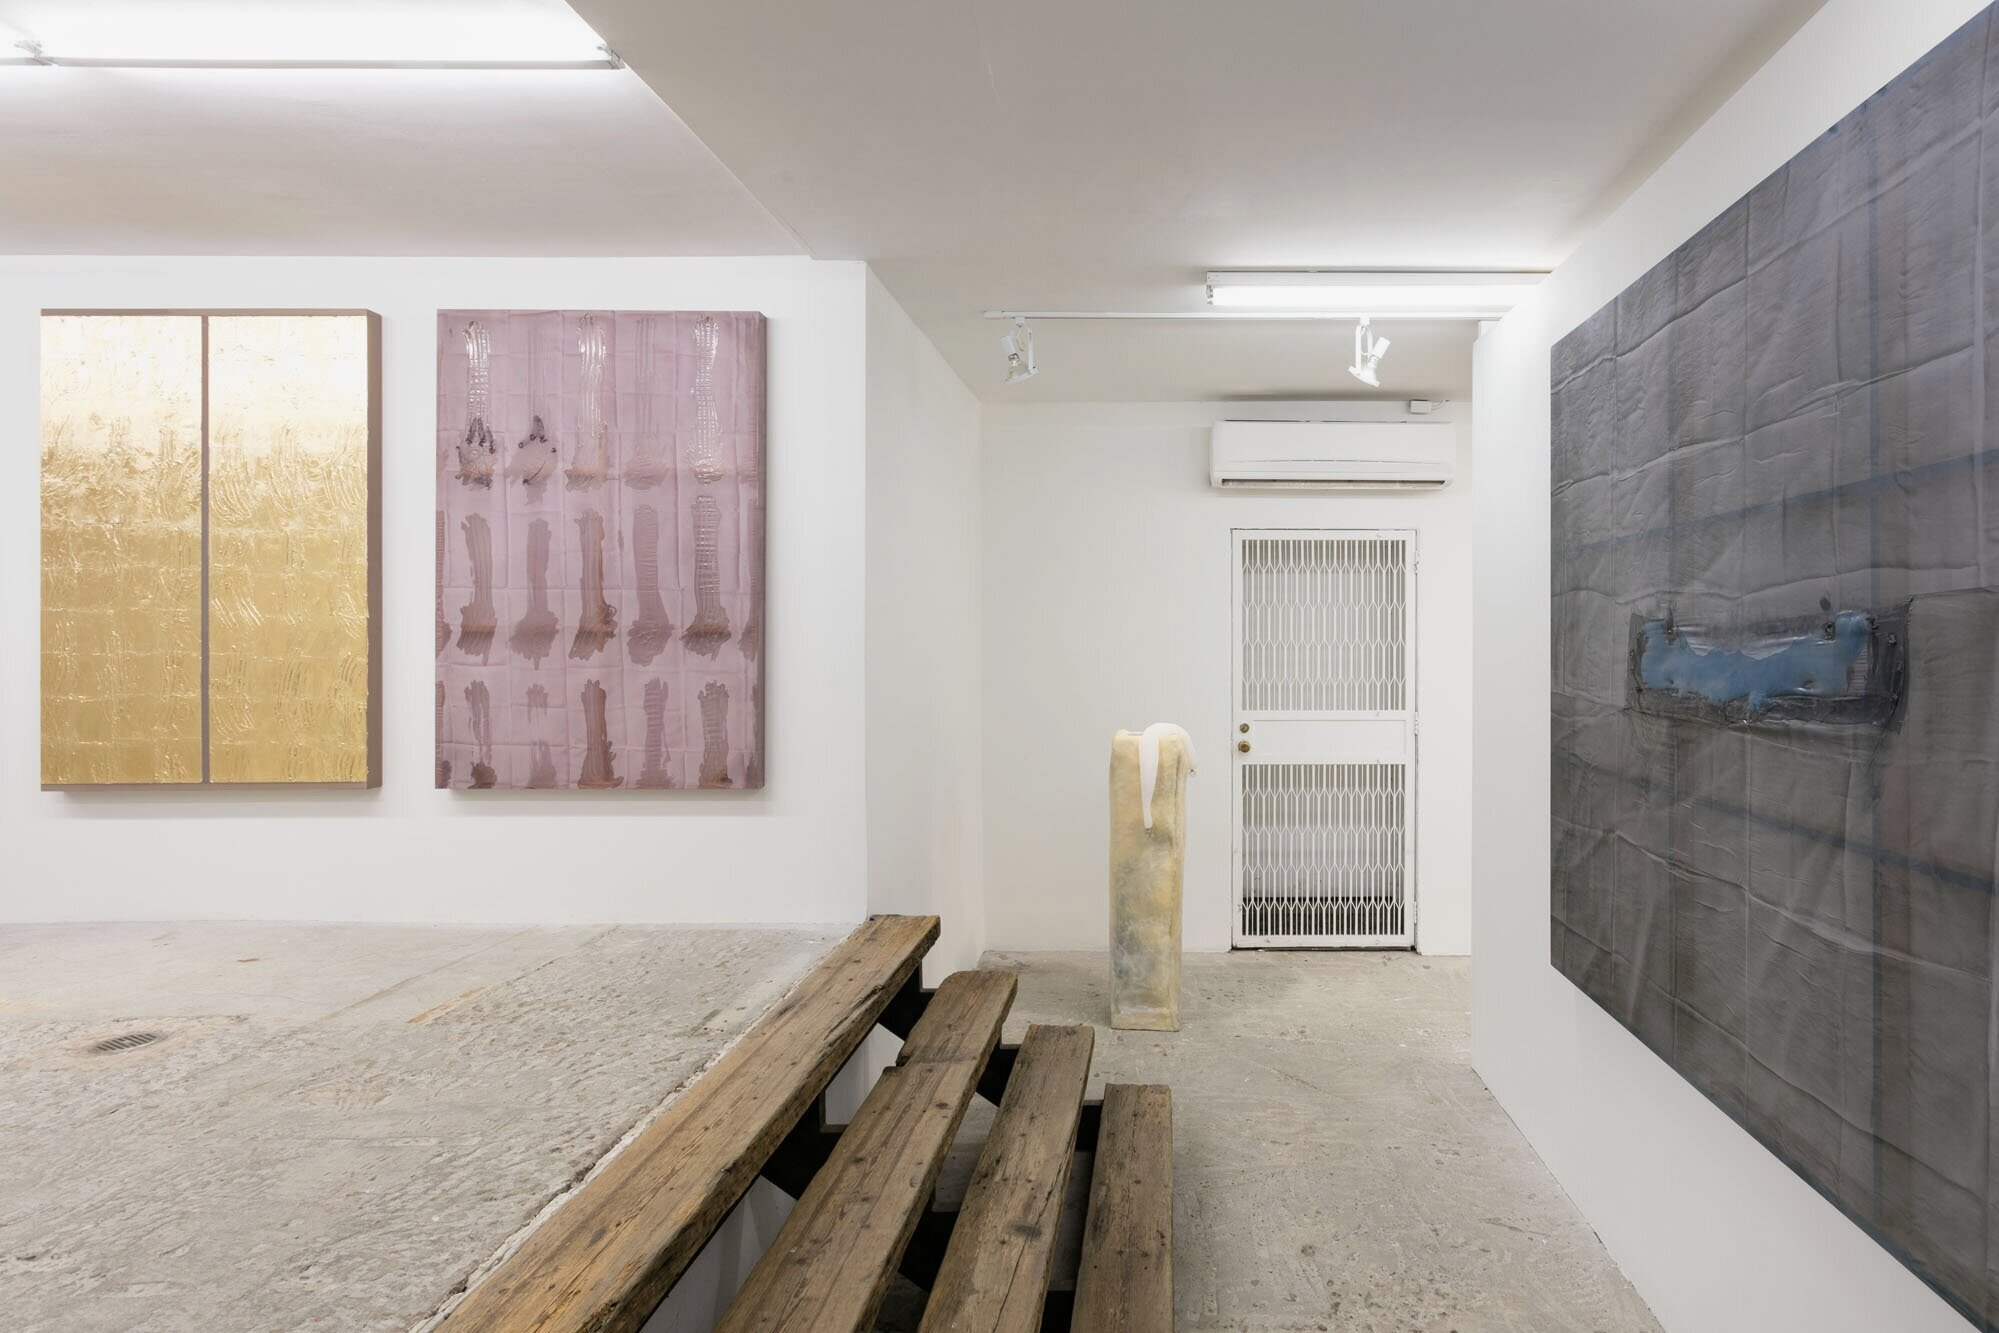 Erica Mahinay   Let the Breath Breathe Itself , 2019  Installation View at Lyles & King